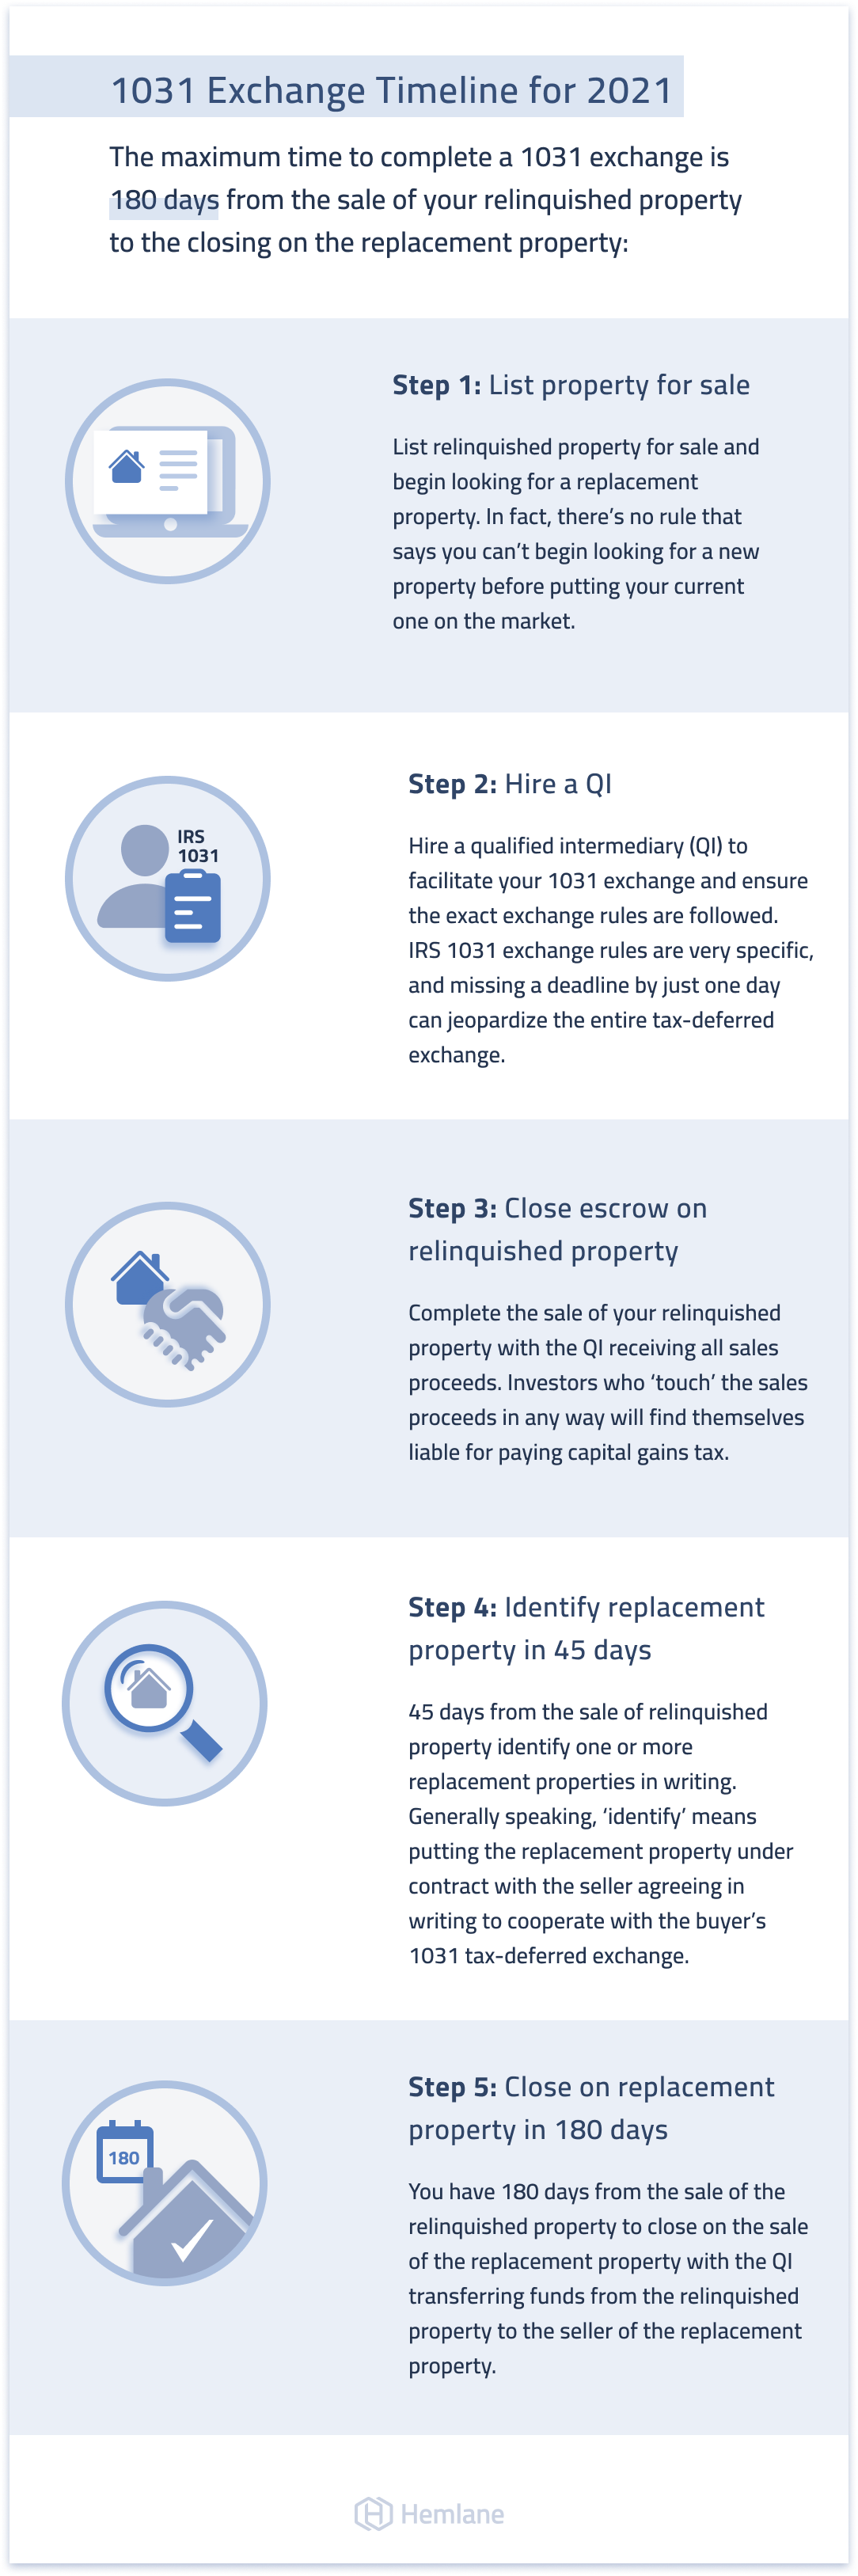 What is the 1031 exchange timeline for real estate investors?